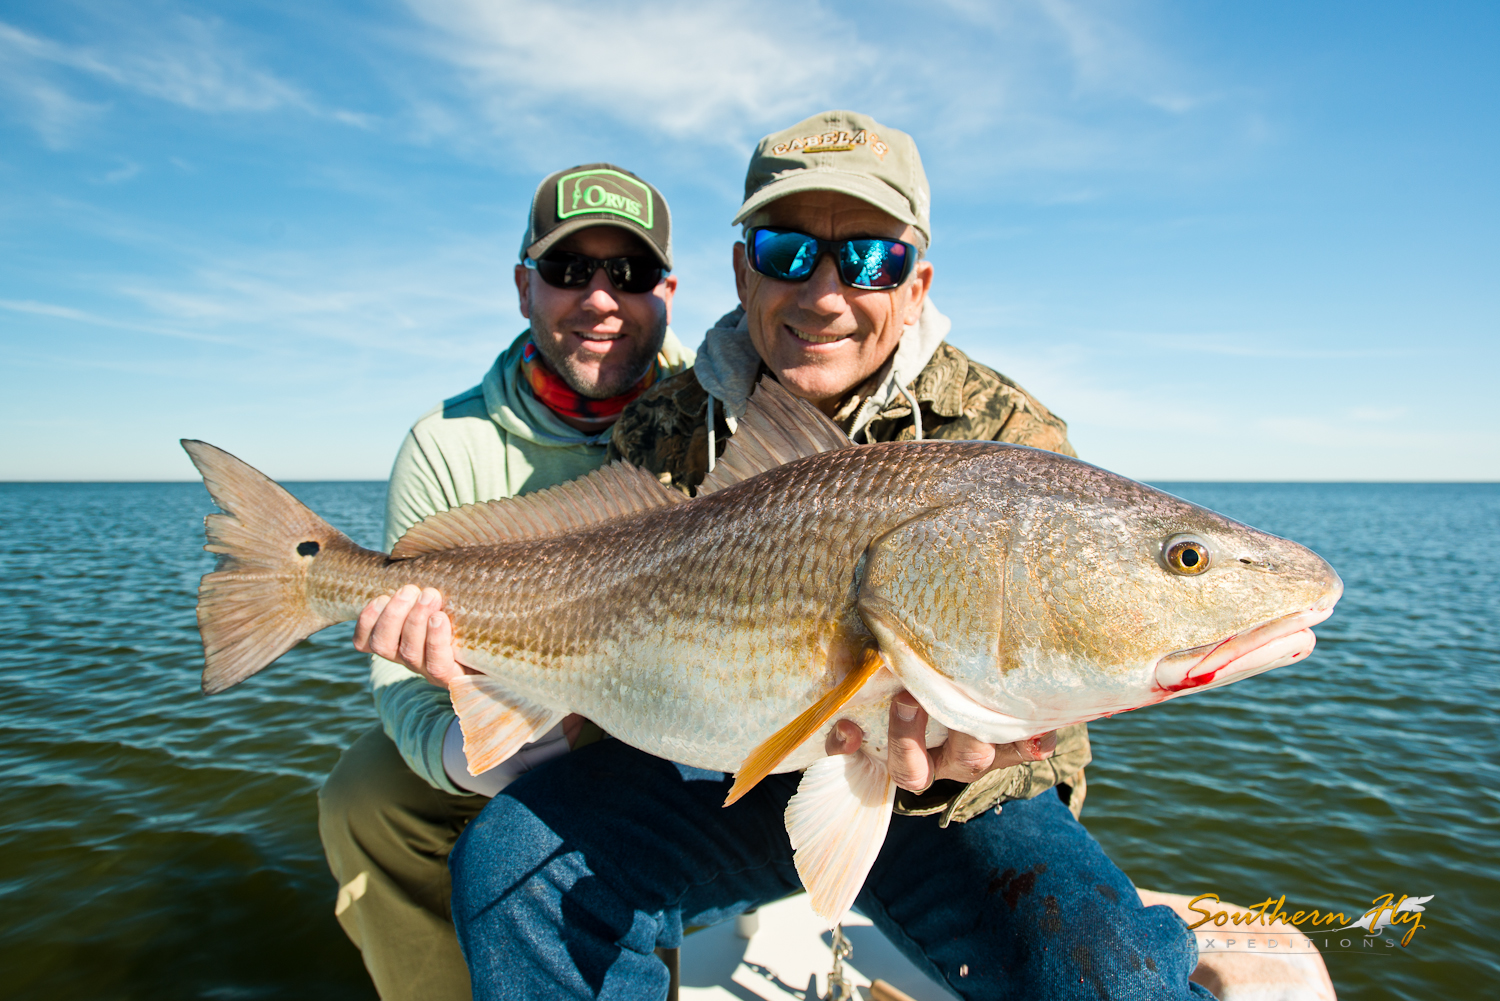 Shallow Water Sight Fishing with Southern Fly Expeditions